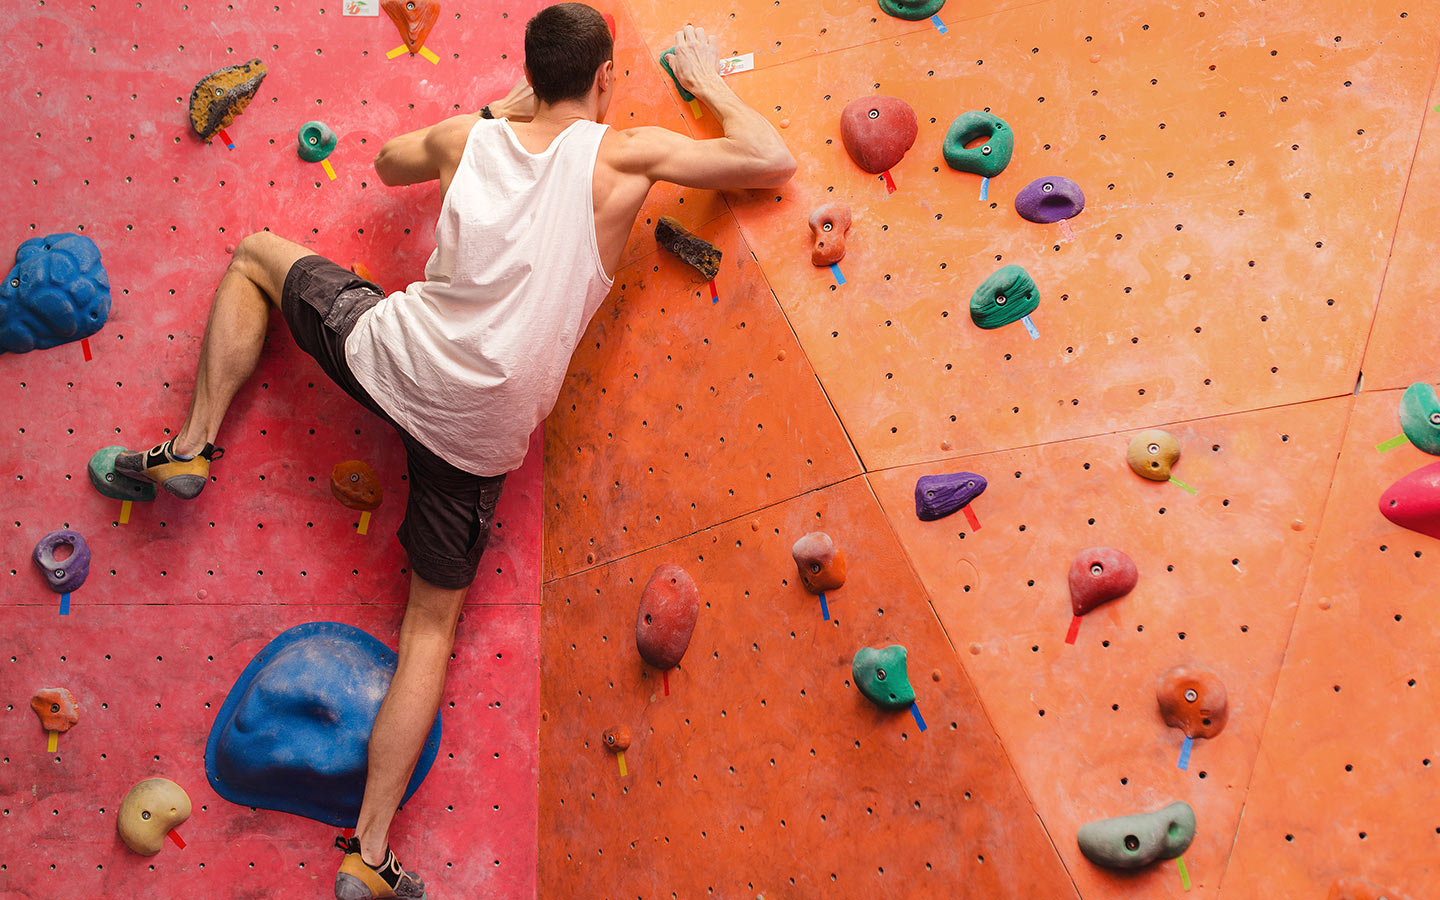 View of person on a rock climbing wall